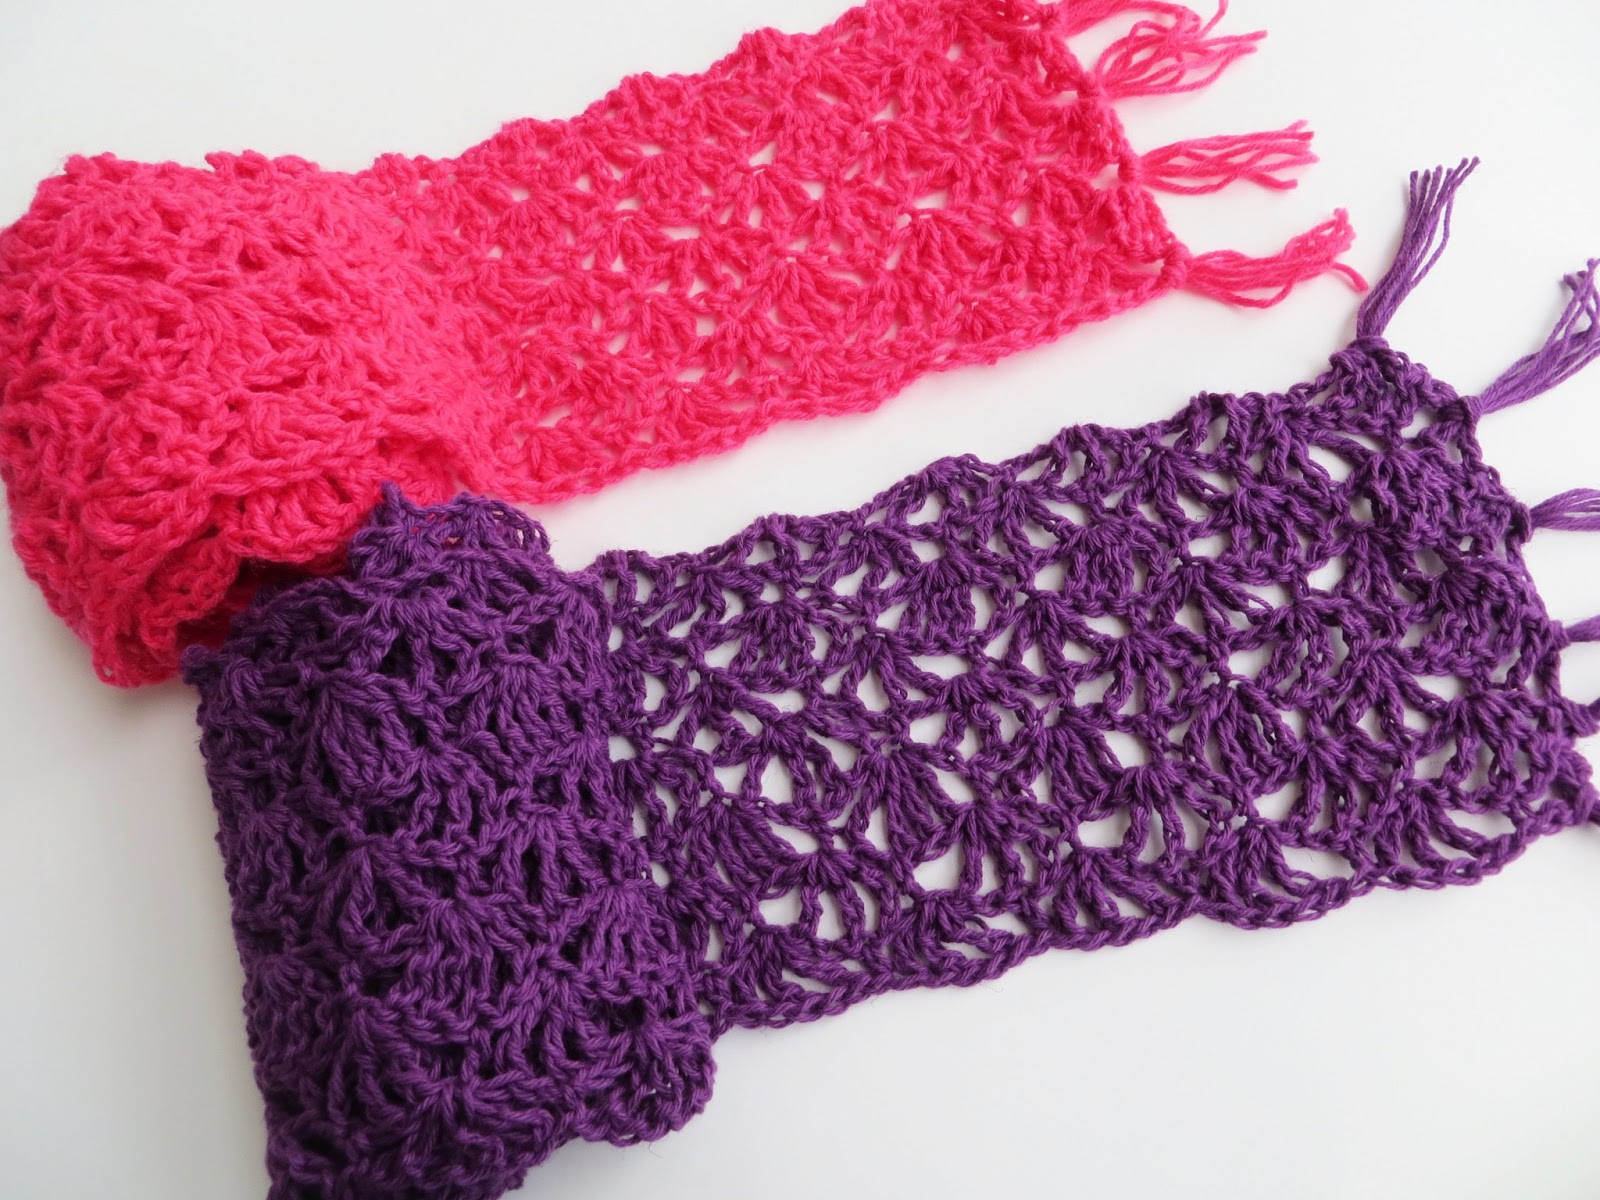 All Crochet Free Patterns : Crochet Dreamz: Alana Lacy Scarf, Free Crochet Pattern